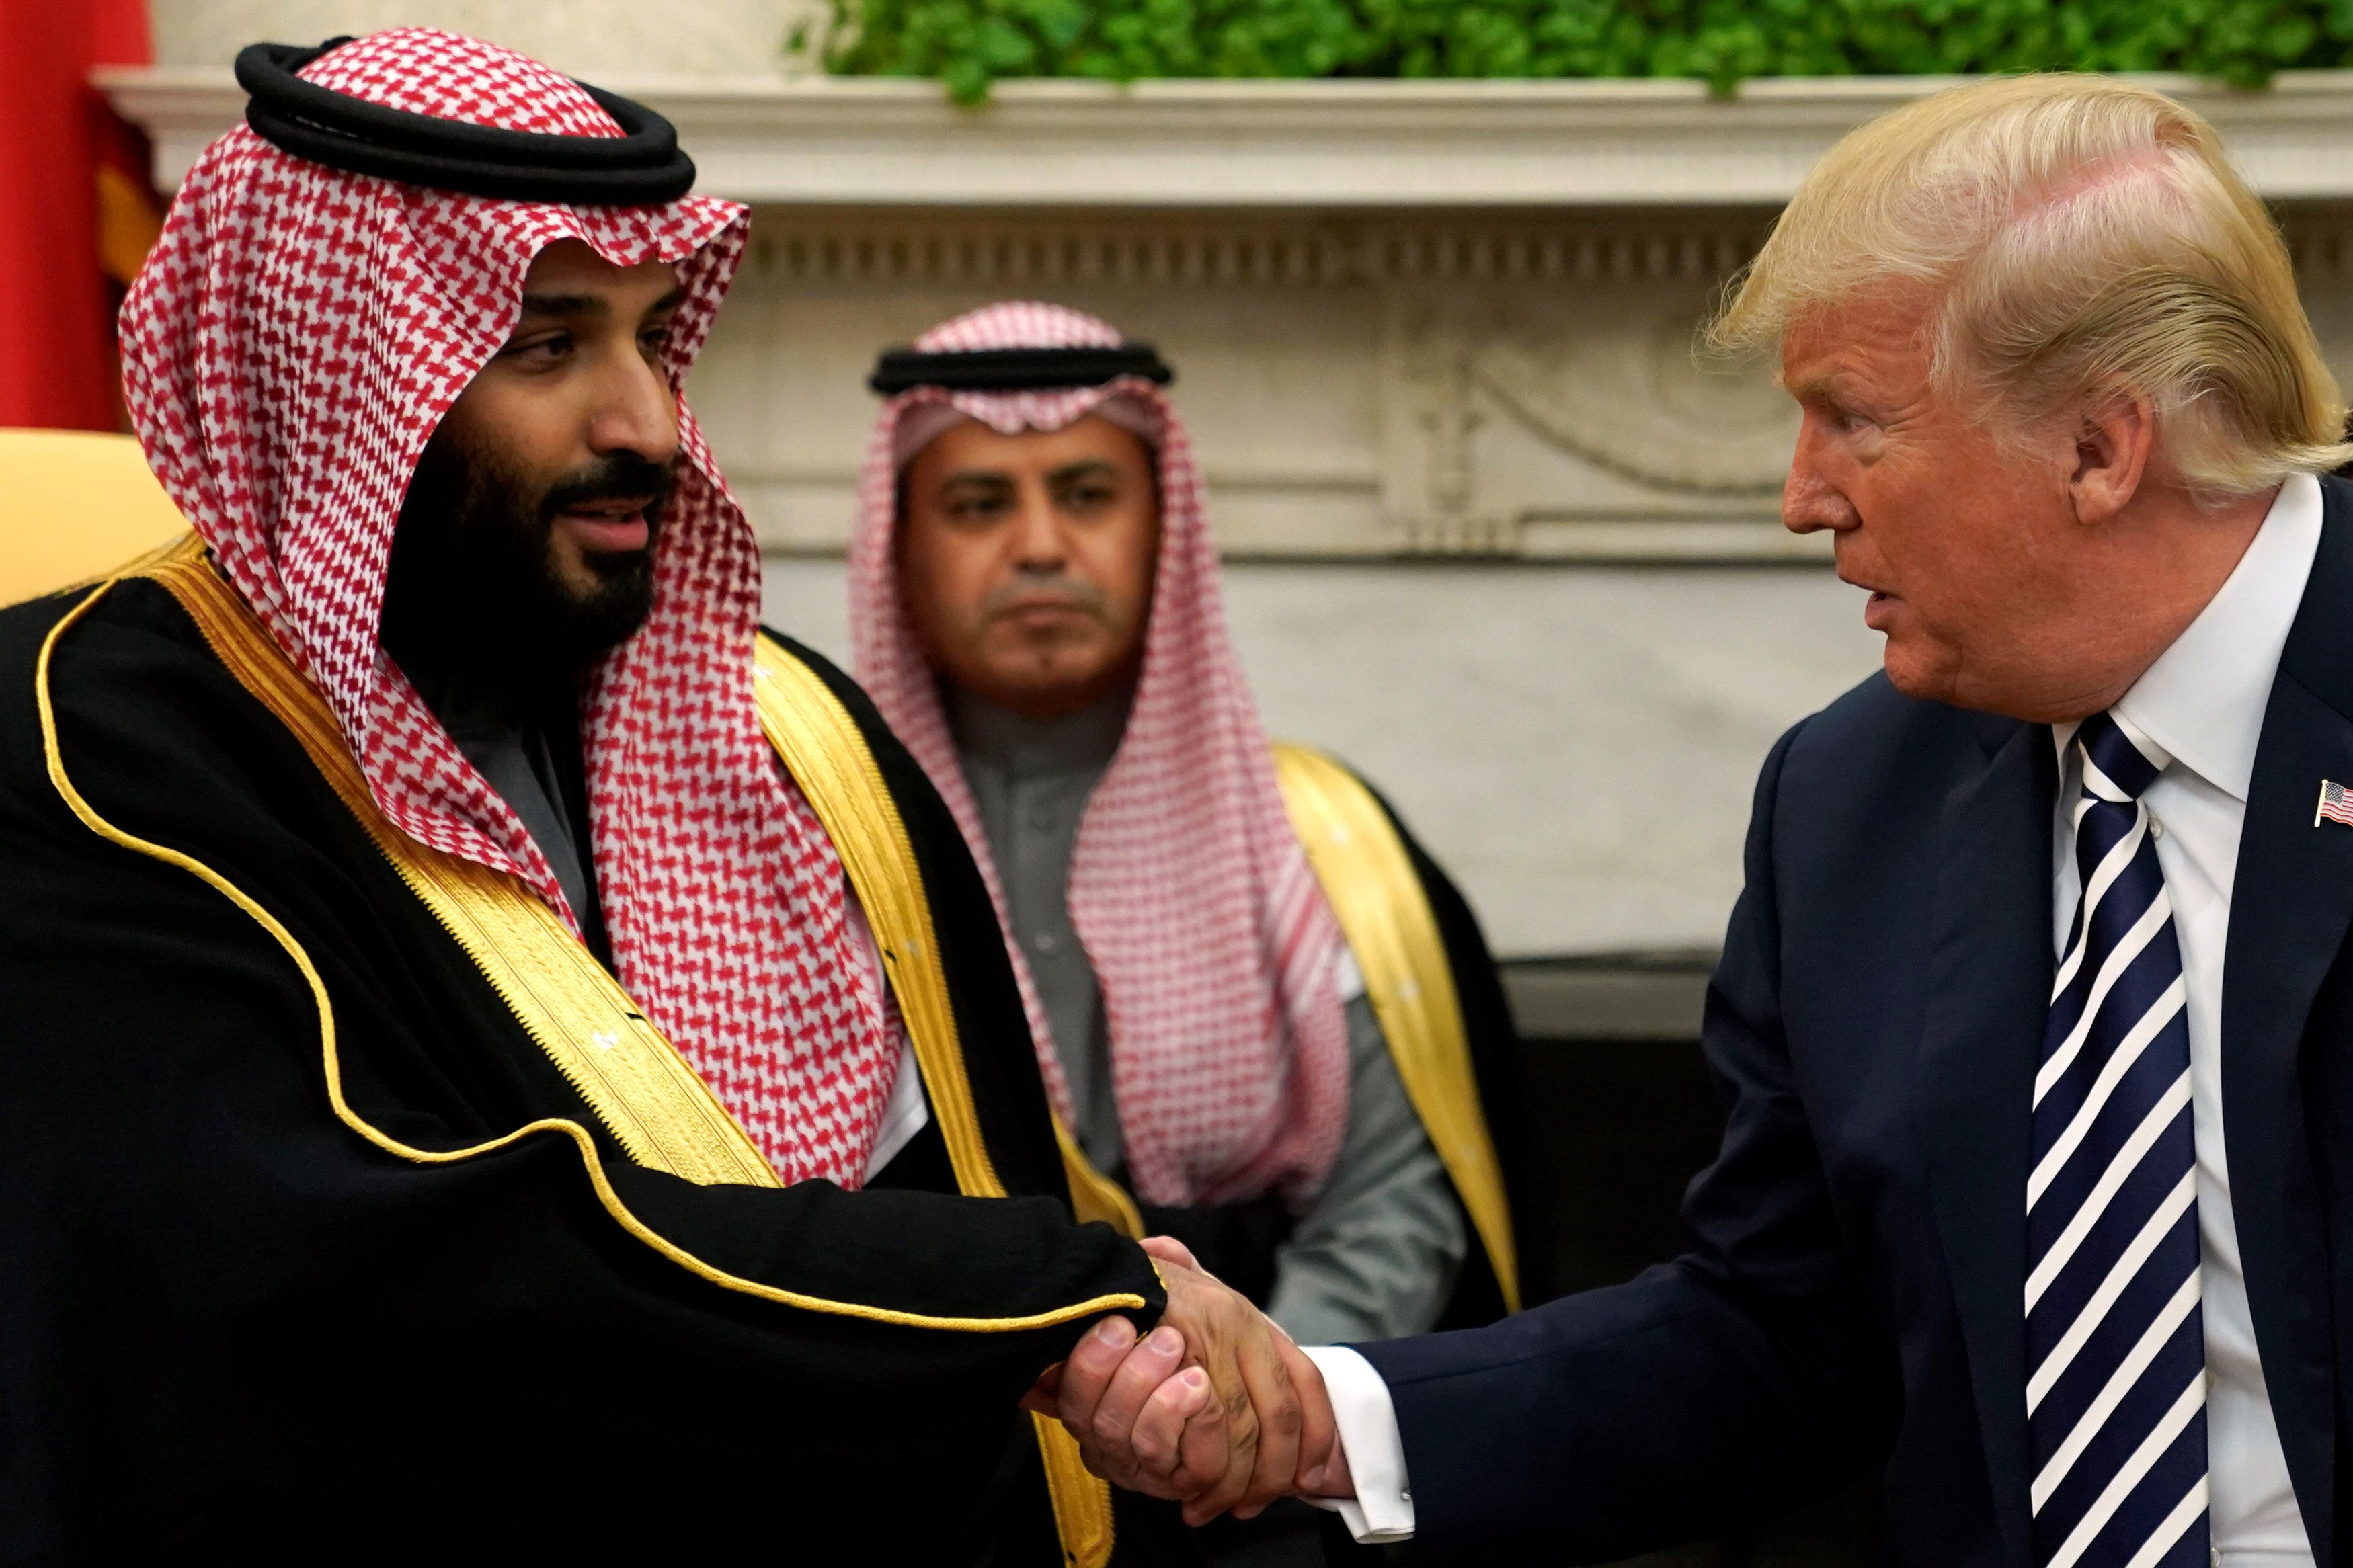 Saudi Arabia's Crown Prince Mohammed bin Salman meets withU.S. President Donald Trump at the White House on March 20.